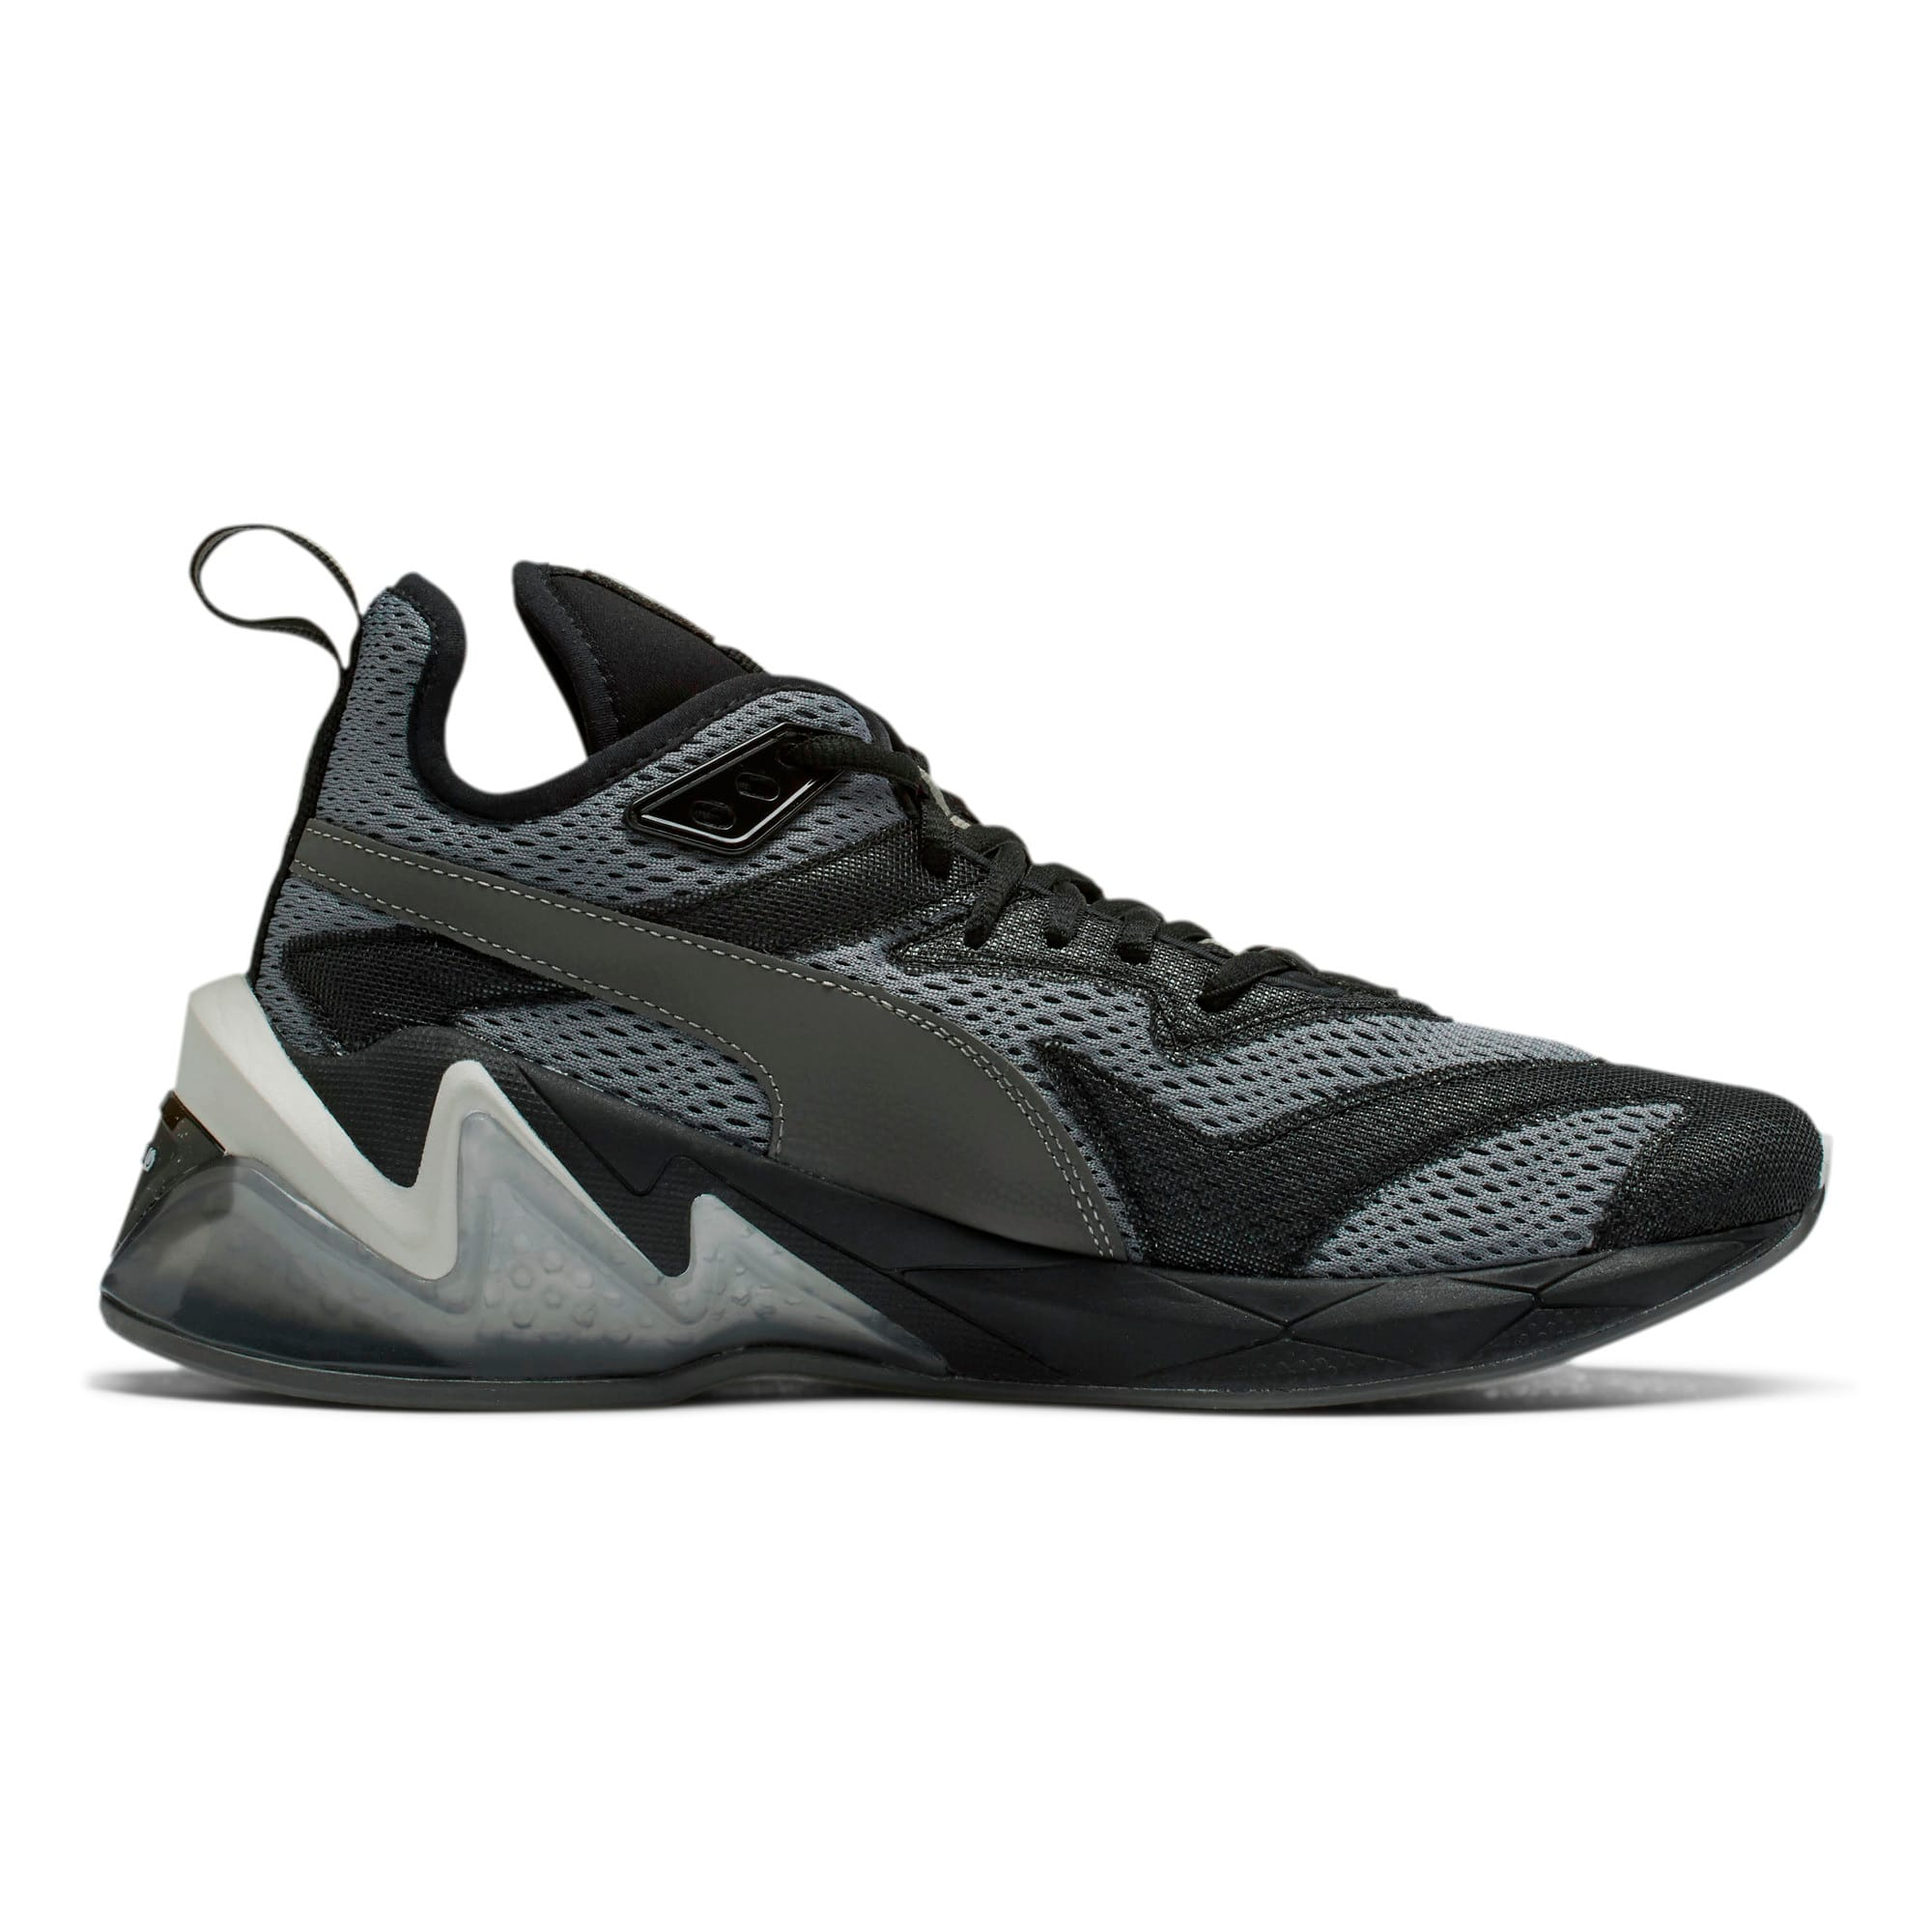 Thumbnail 6 of LQDCELL Origin Tech Men's Training Shoes, Puma Black-CASTLEROCK, medium